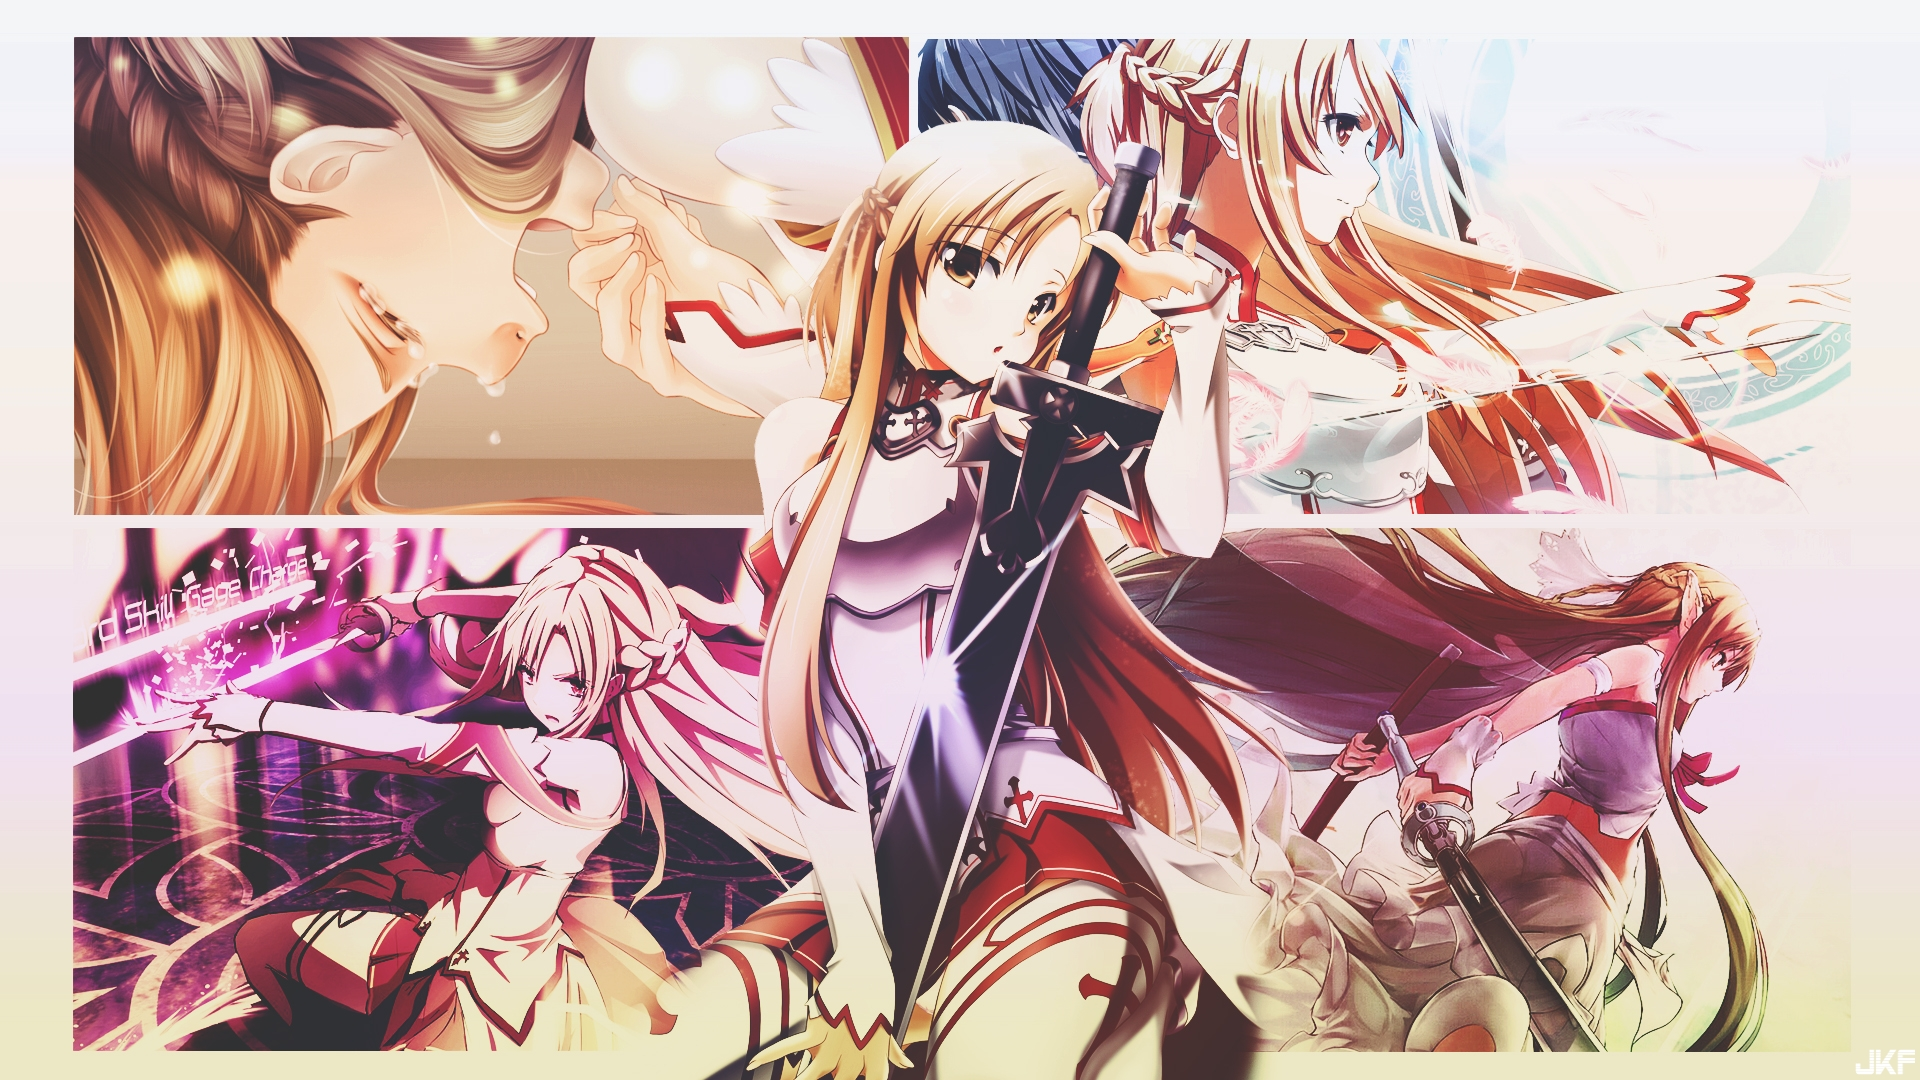 asuna_wallpaper_3_by_dinocojv-d8jk05q.jpg